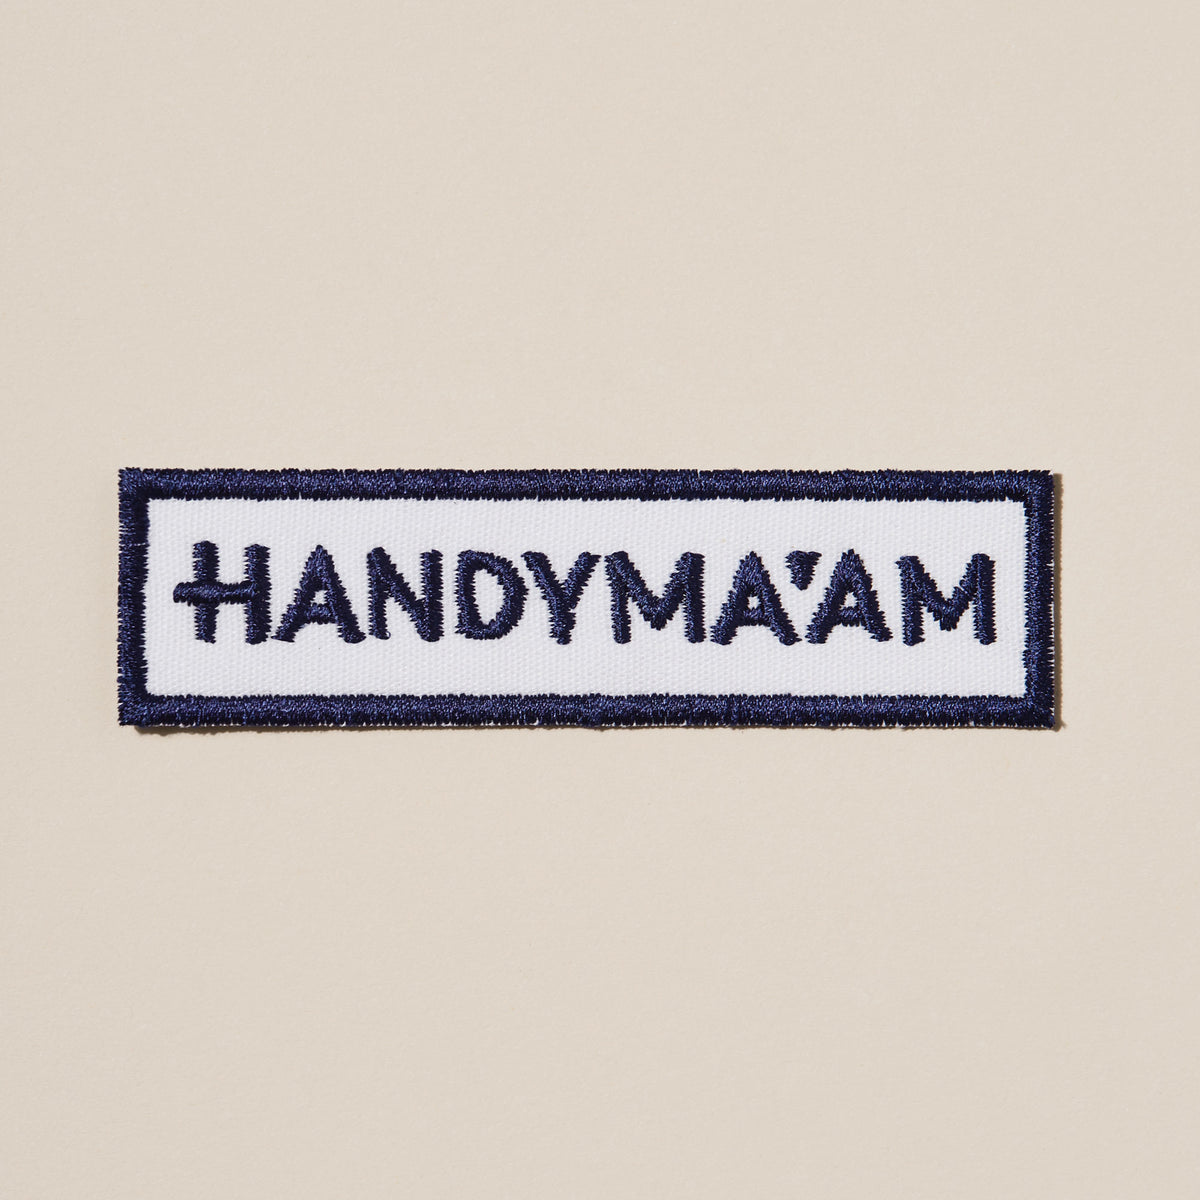 Handyma'am Patch